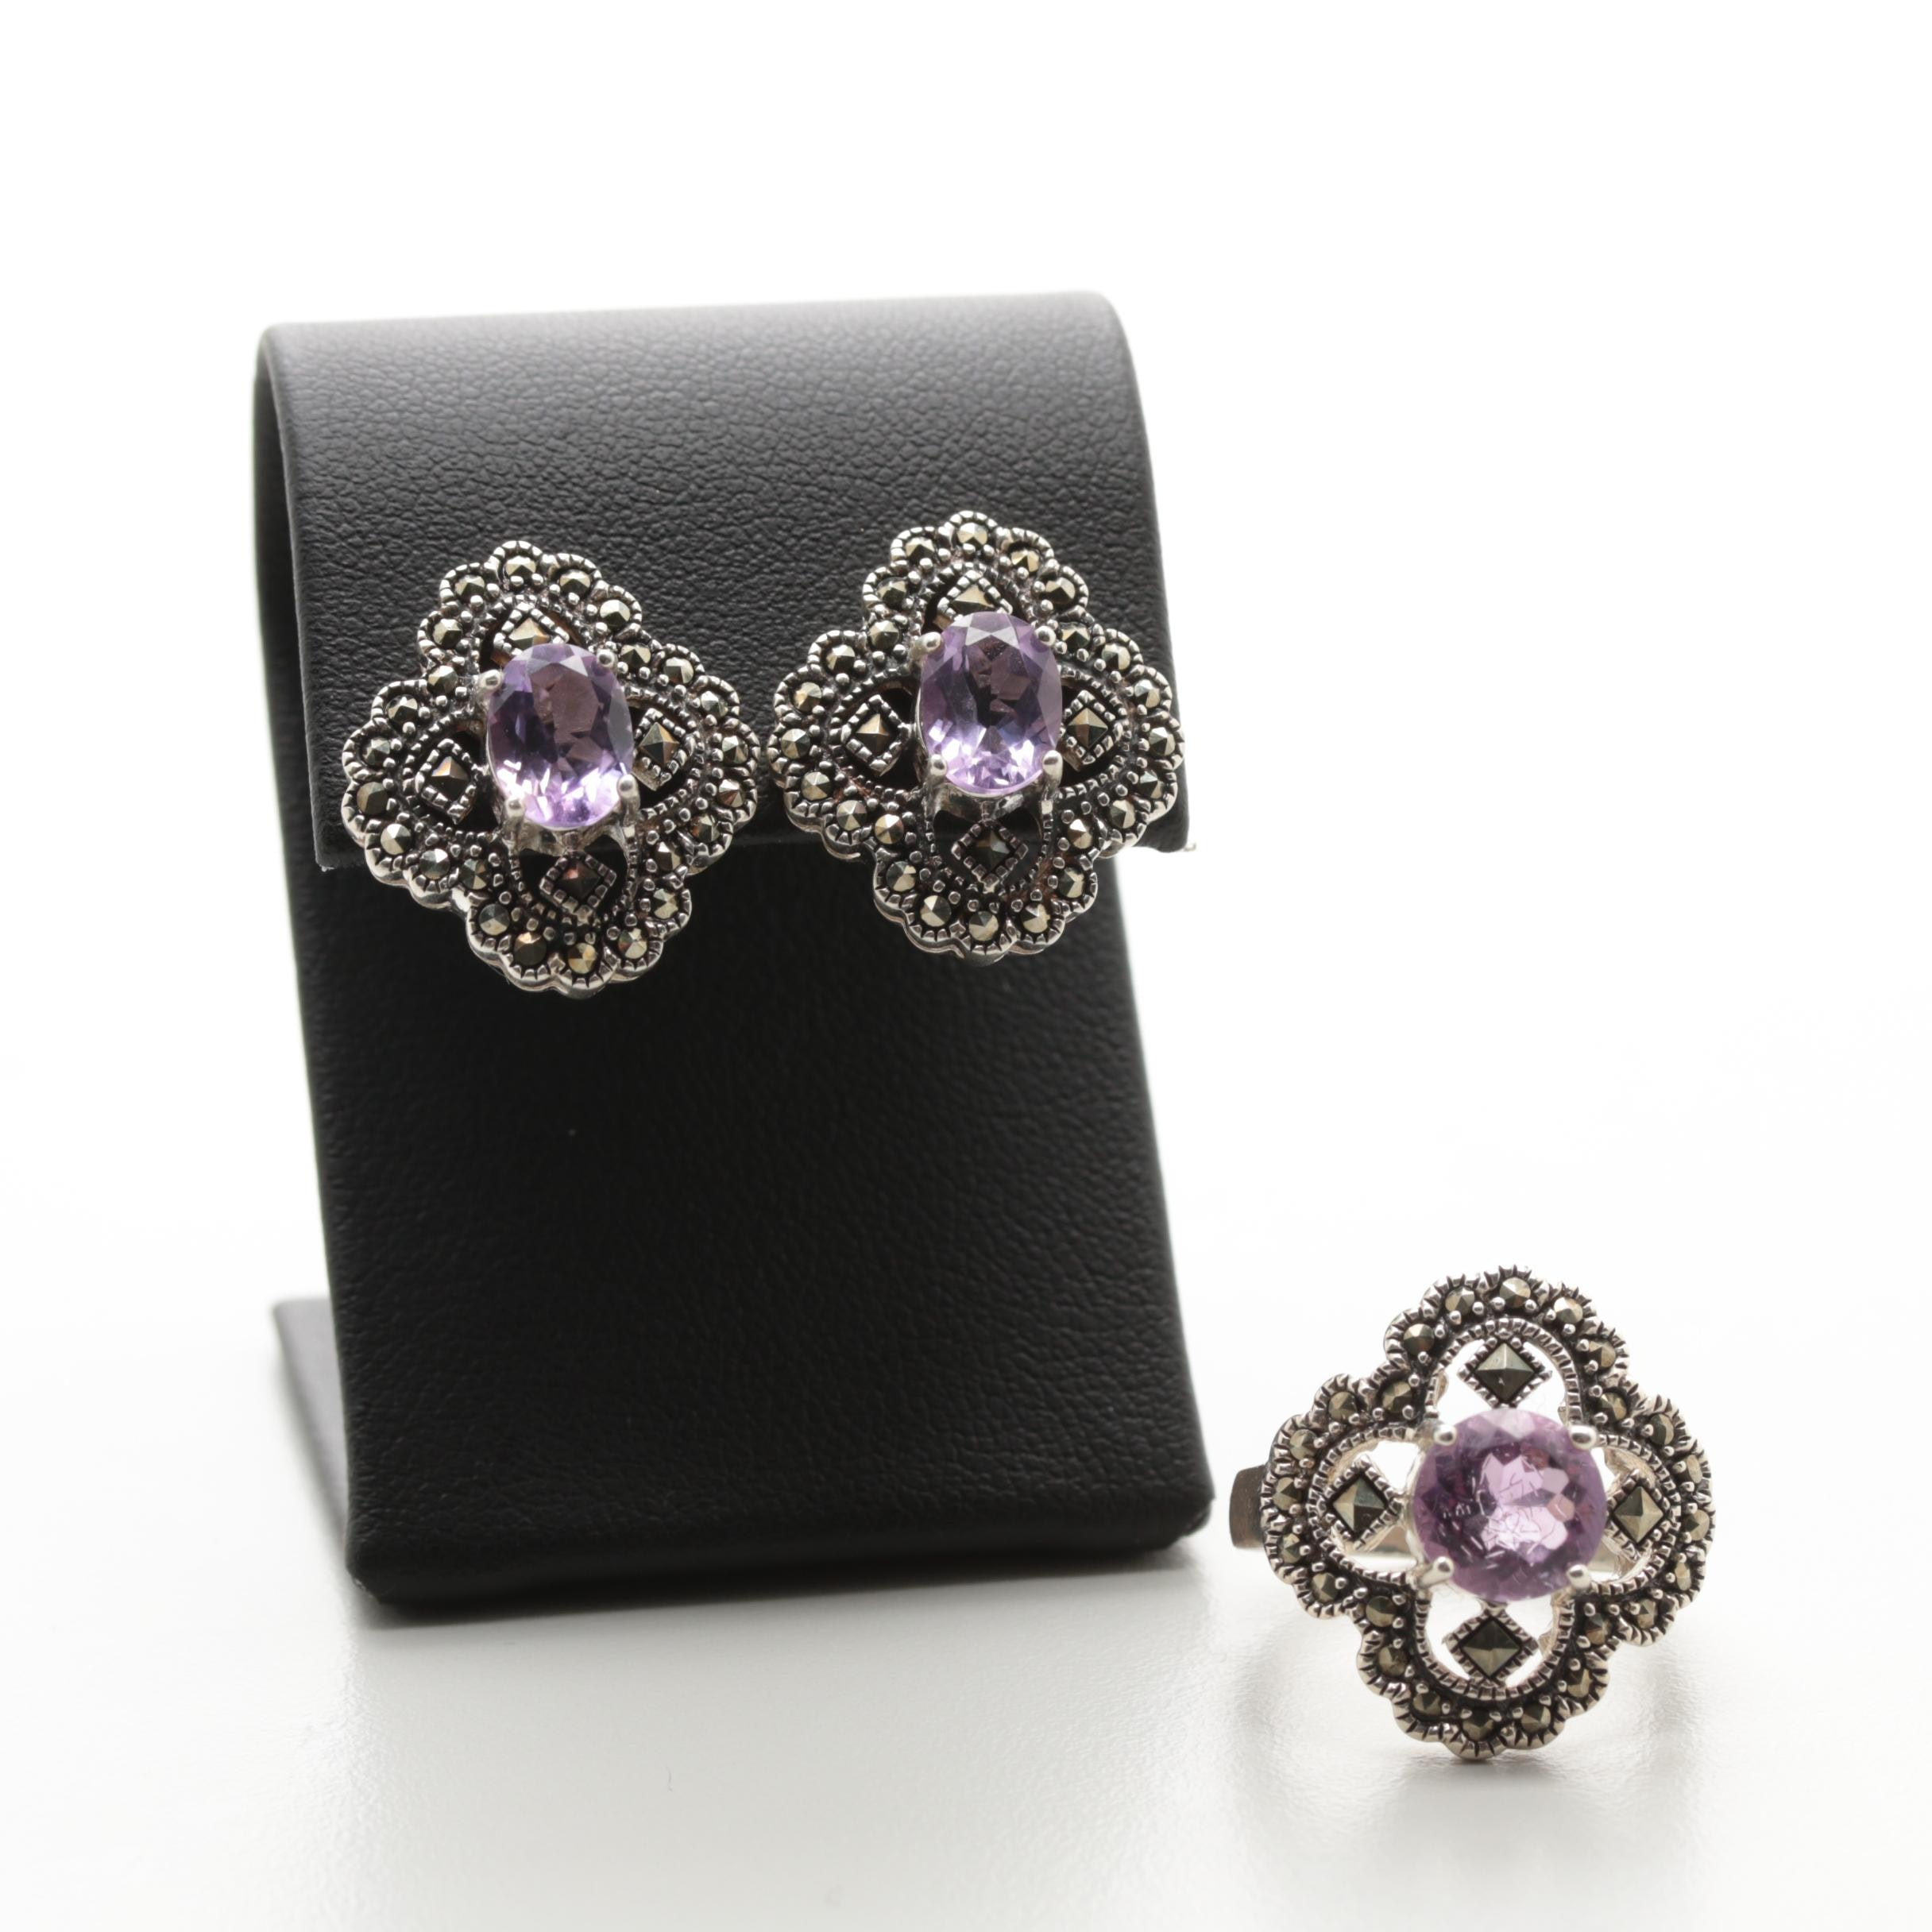 Sterling Silver Amethyst and Marcasite Earrings and Ring Set